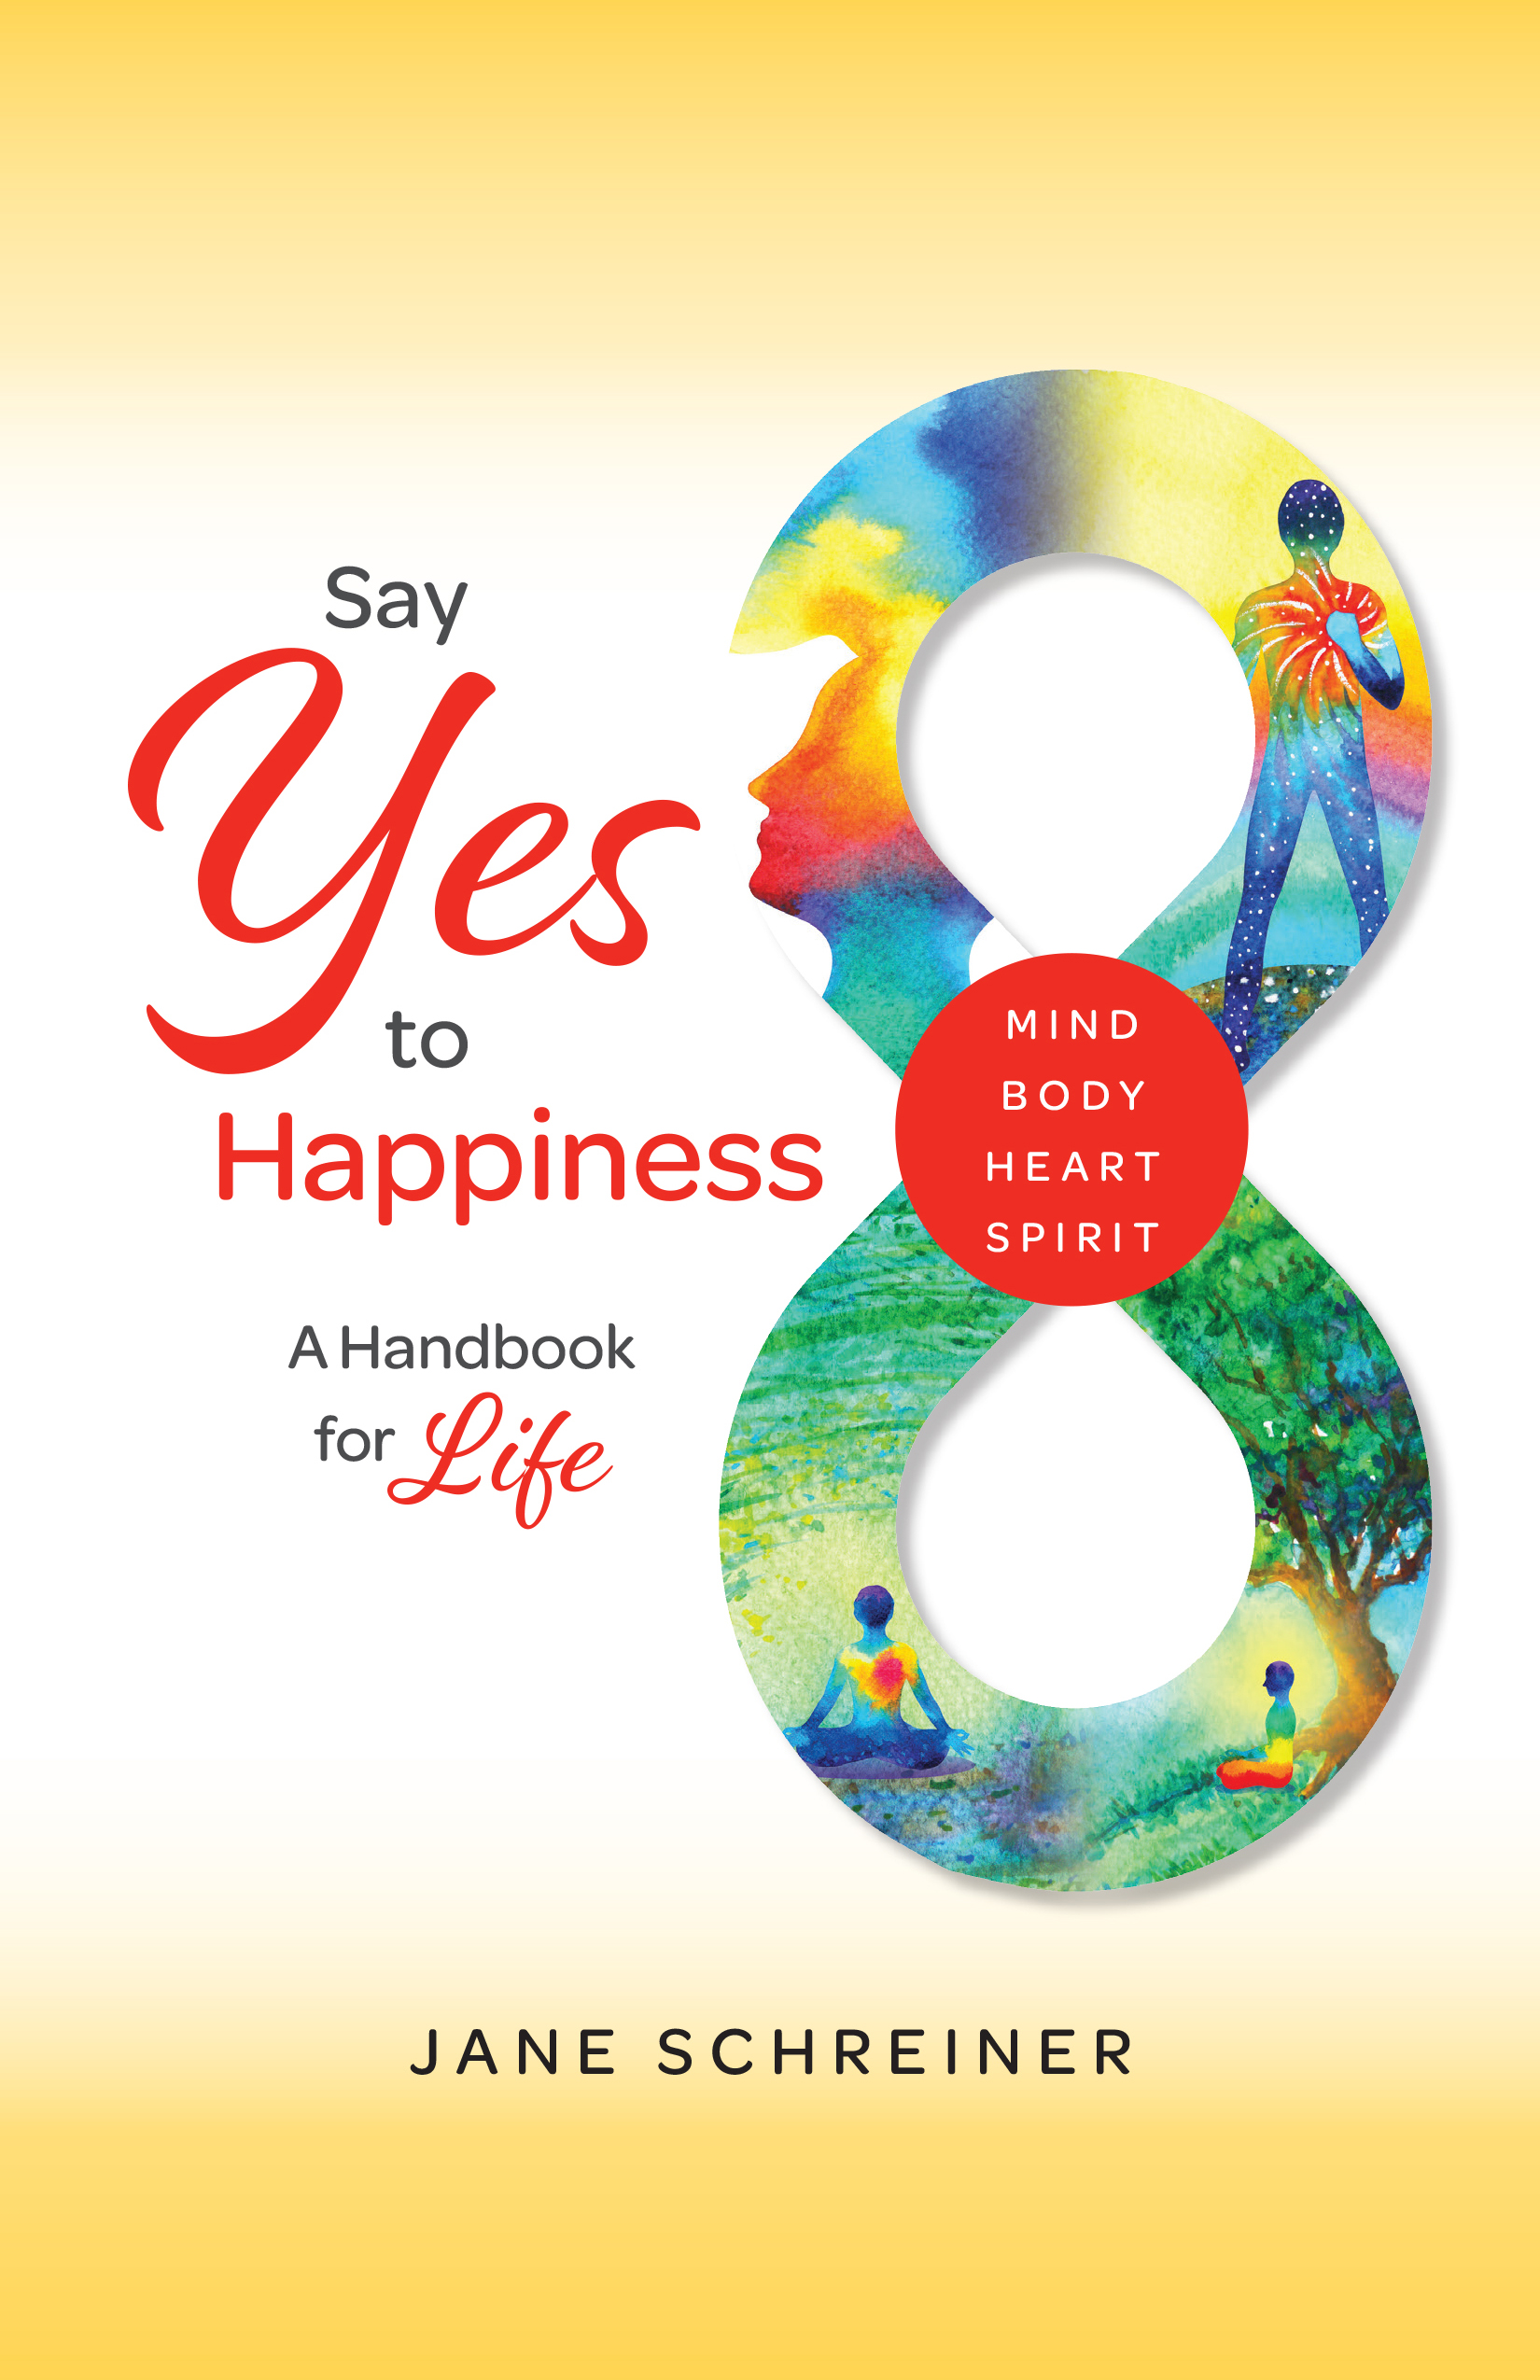 Say Yes to Happiness